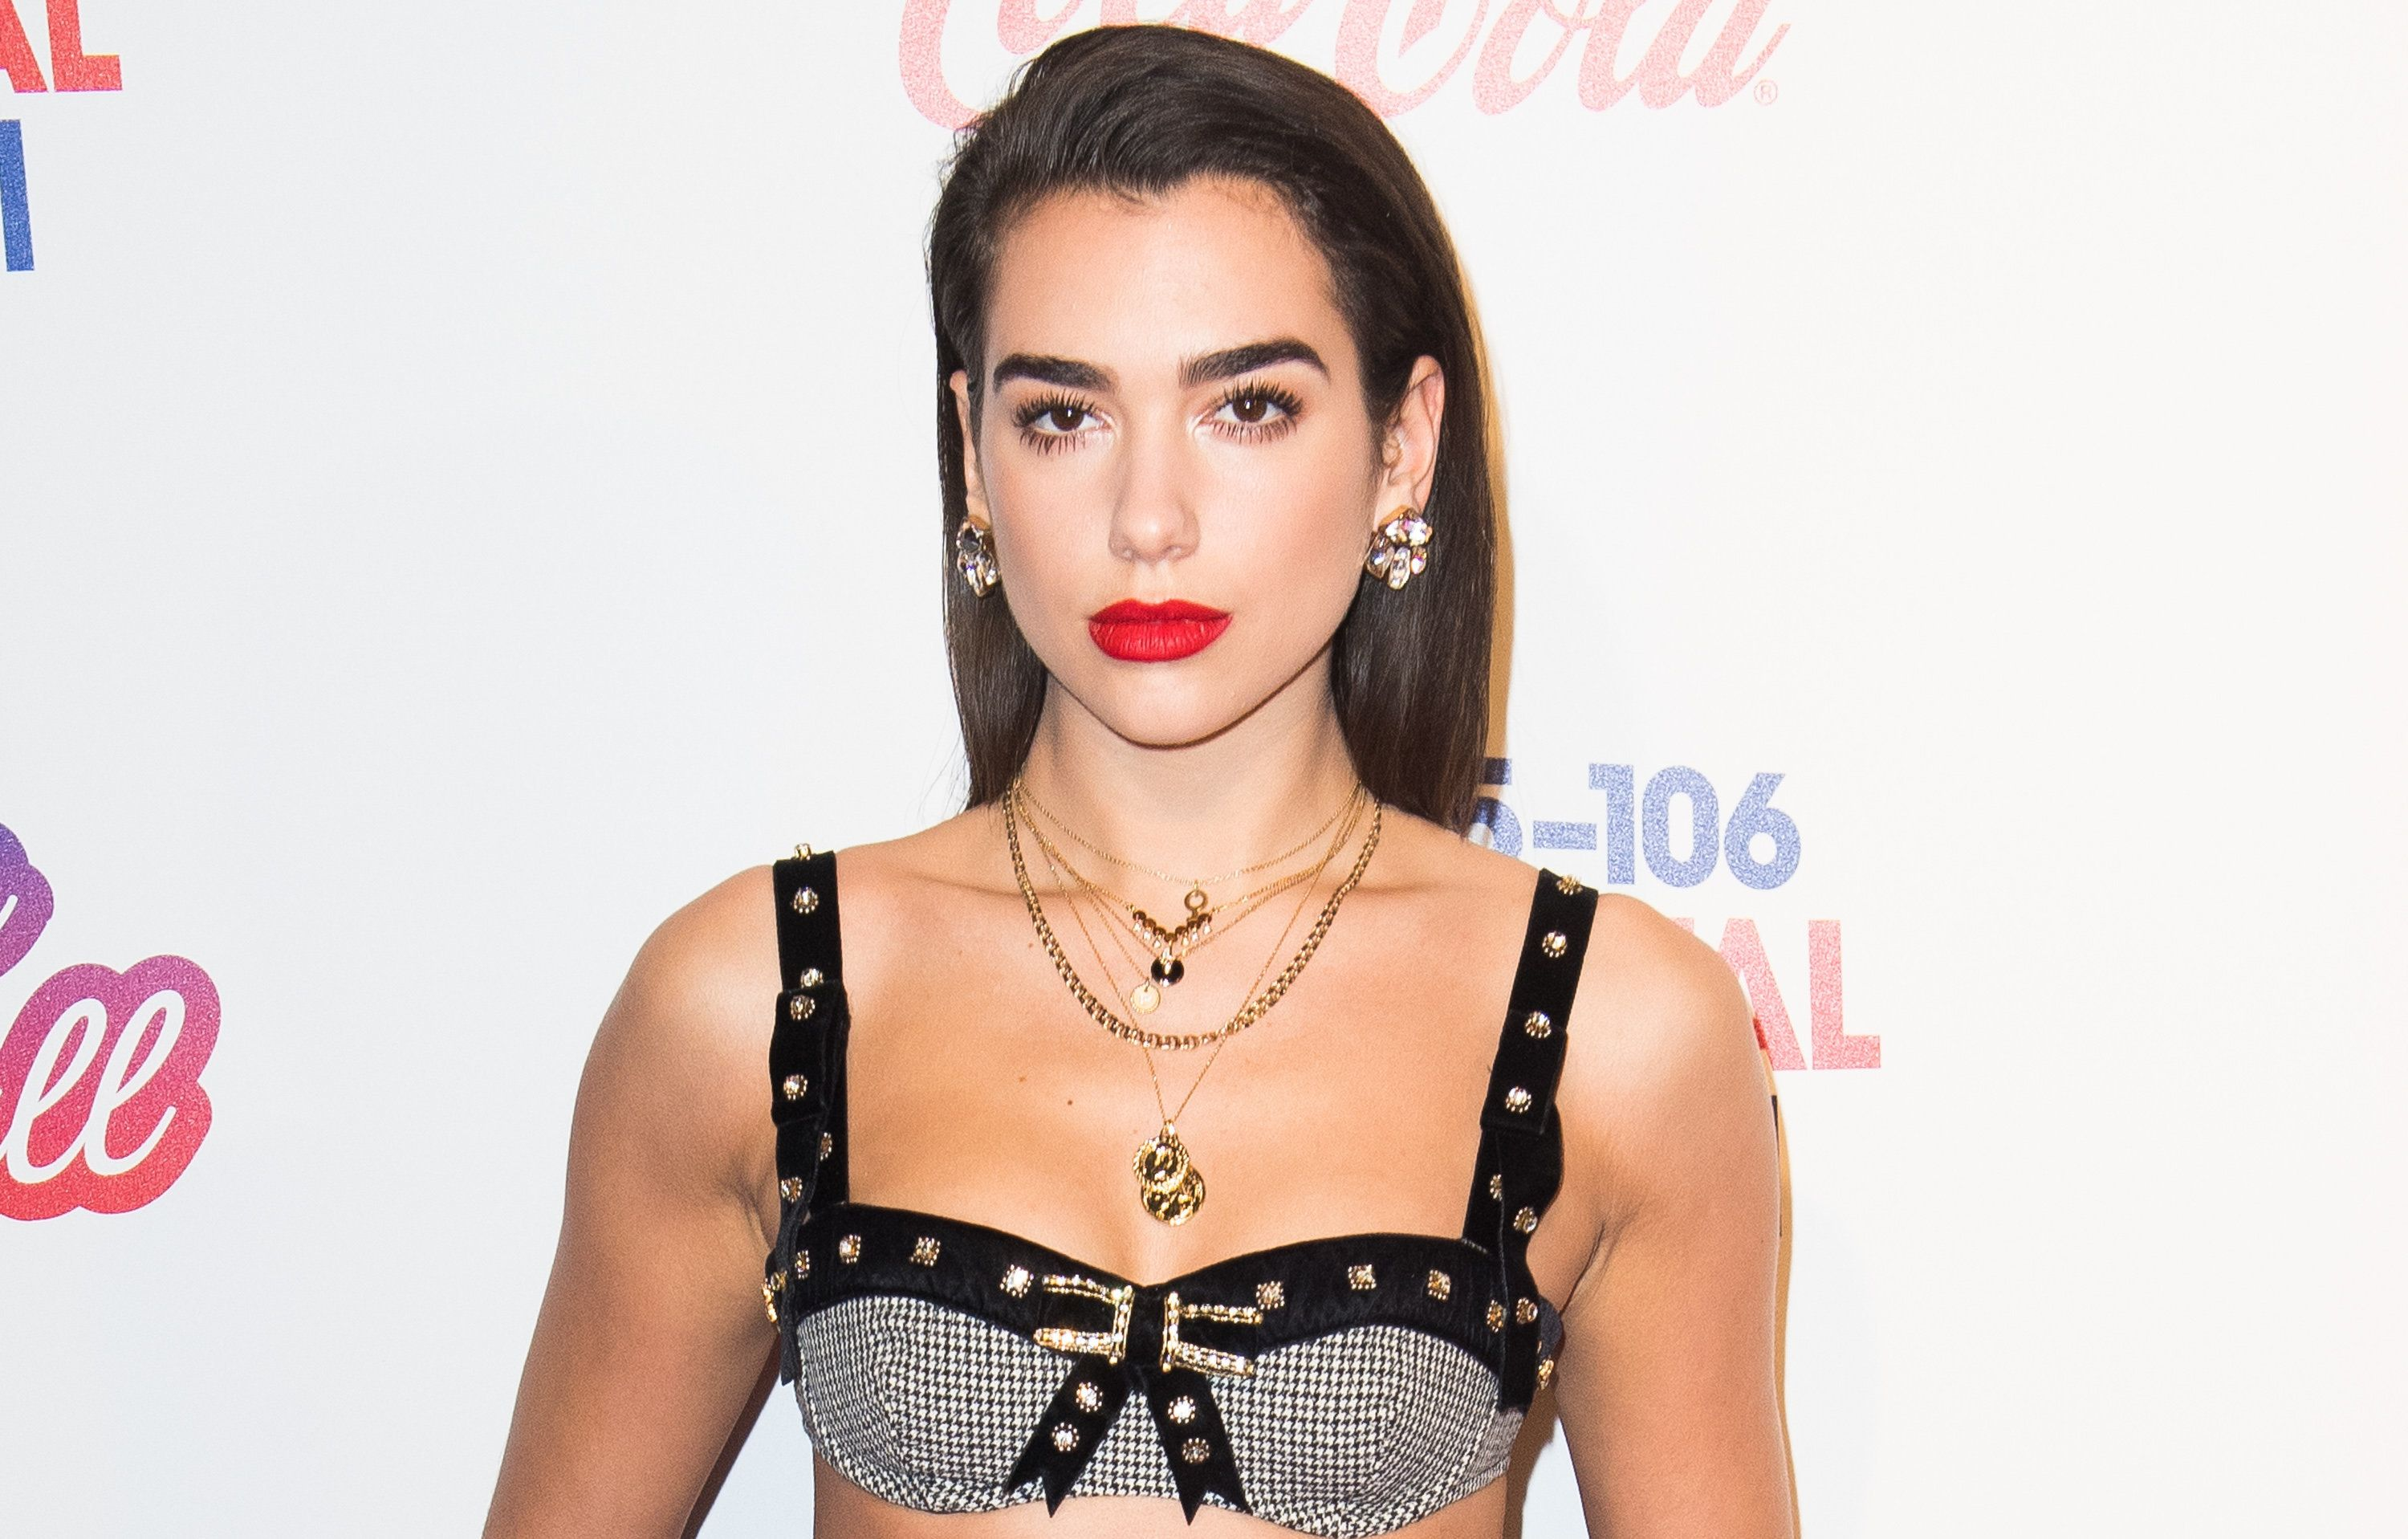 Dua Lipa to perform in Abu Dhabi